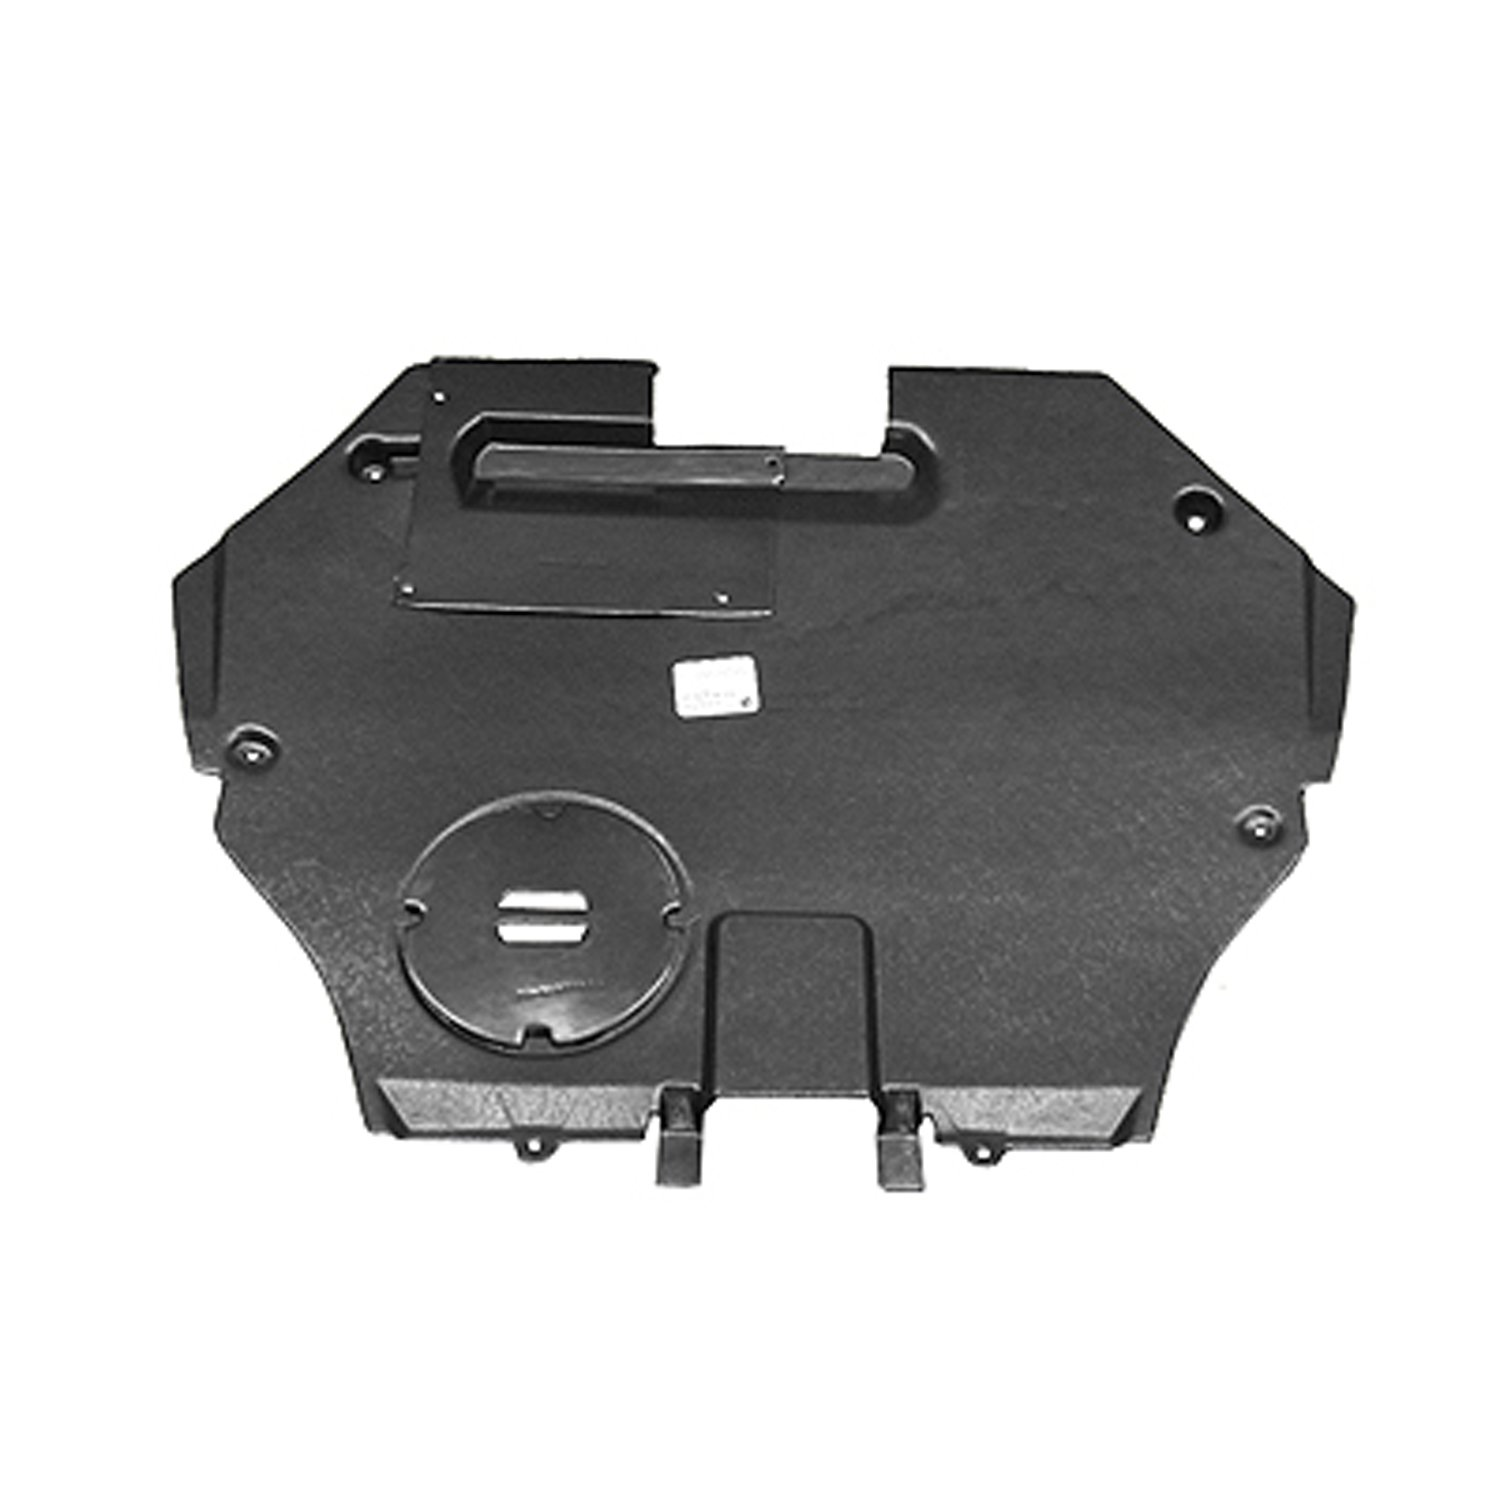 Crash Parts Plus FO1228110 Lower Engine Cover for 06-09 Ford Fusion, Mercury Milan